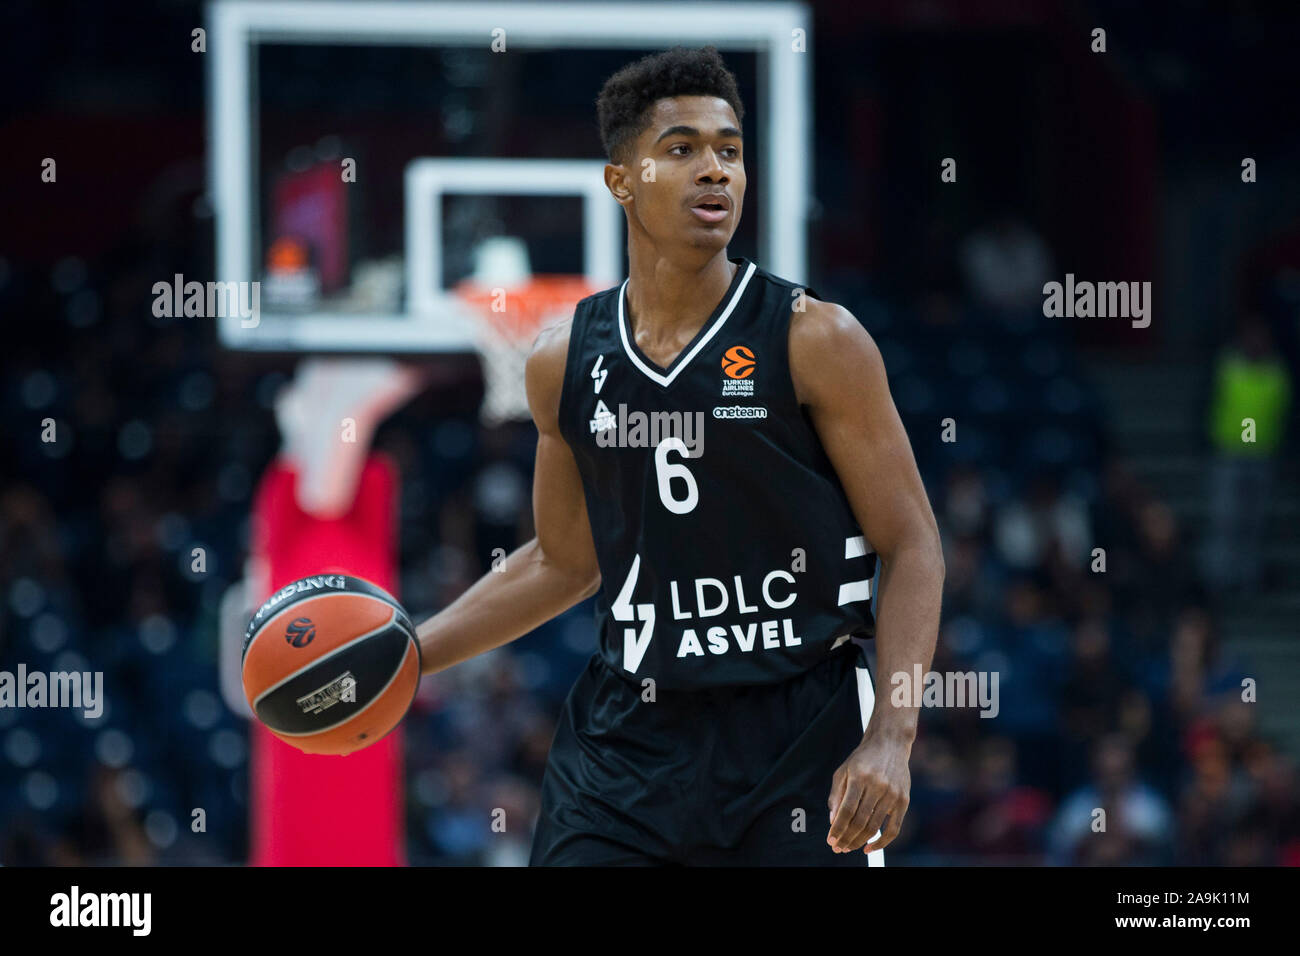 ASVEL Lyon-Villeurbanne's point guard, Theo Maledon could potentially be a lottery pick in the 2020 NBA Draft.   (Photo: Nikola Krstic/Alamy Live News)